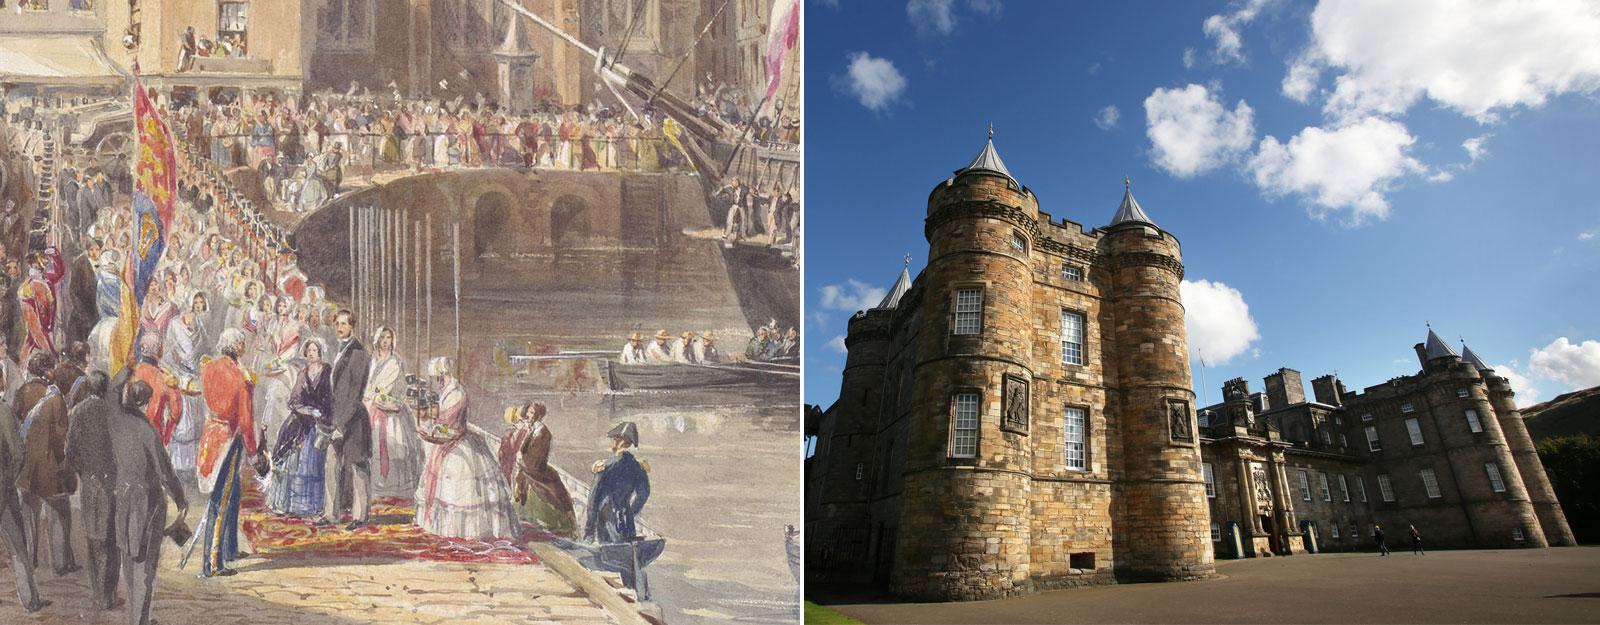 Palace of Holyroodhouse and Victoria and Albert: Our Lives in Watercolour